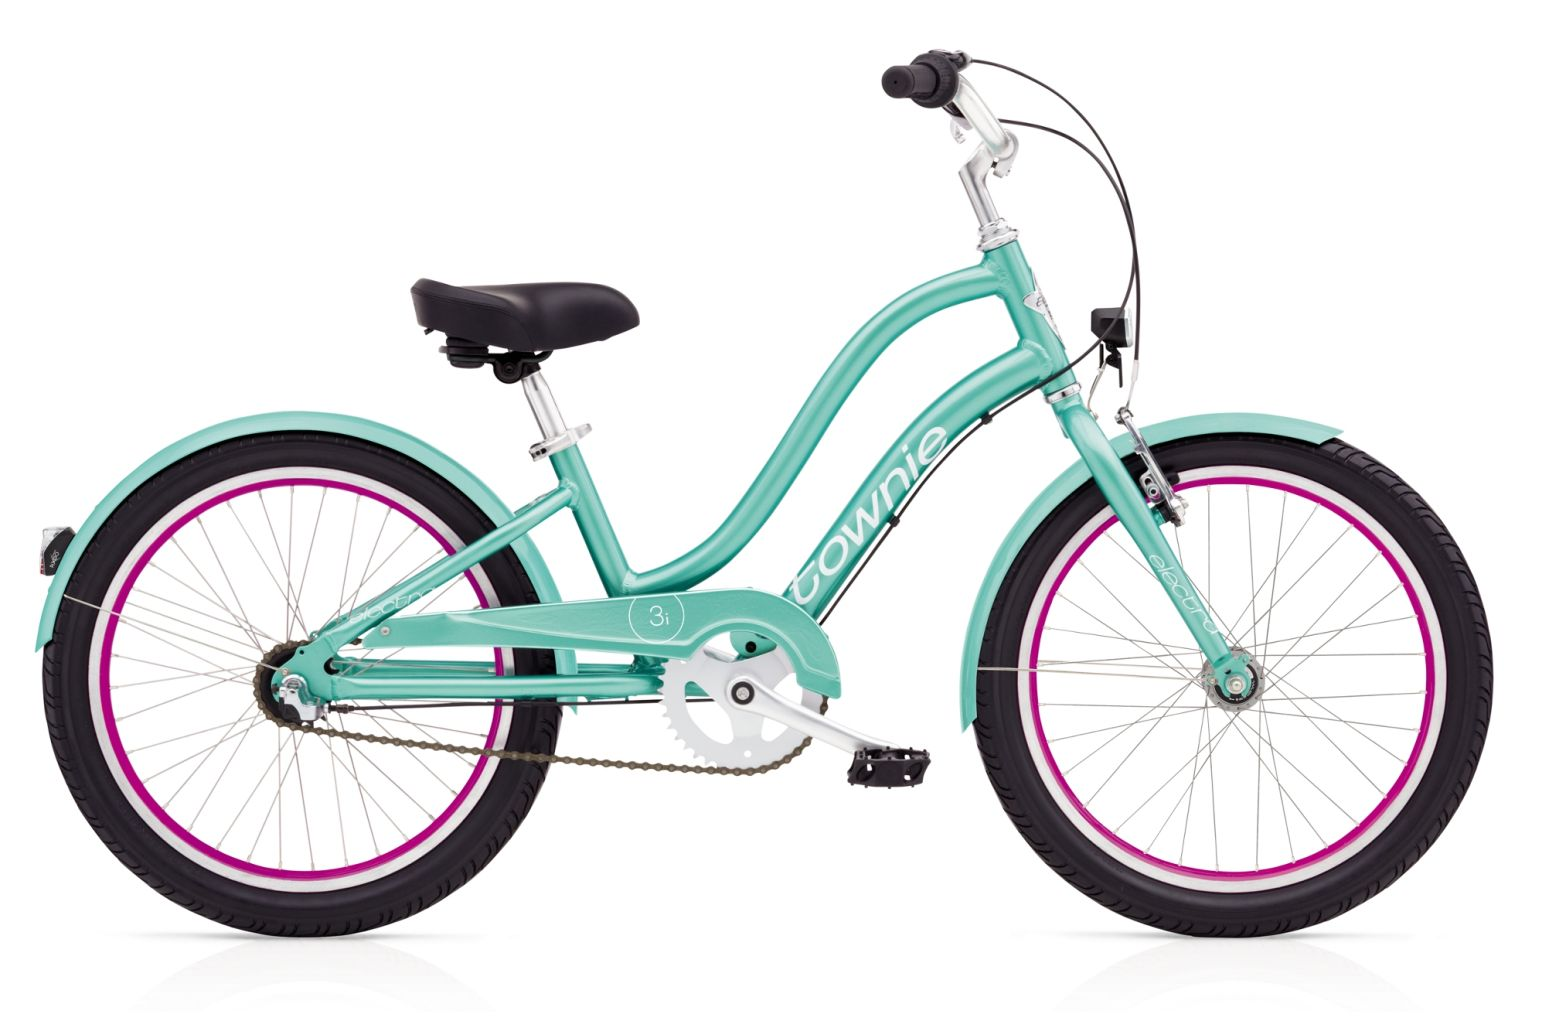 Electra Townie 3i EQ 20in Girls Emerald-30